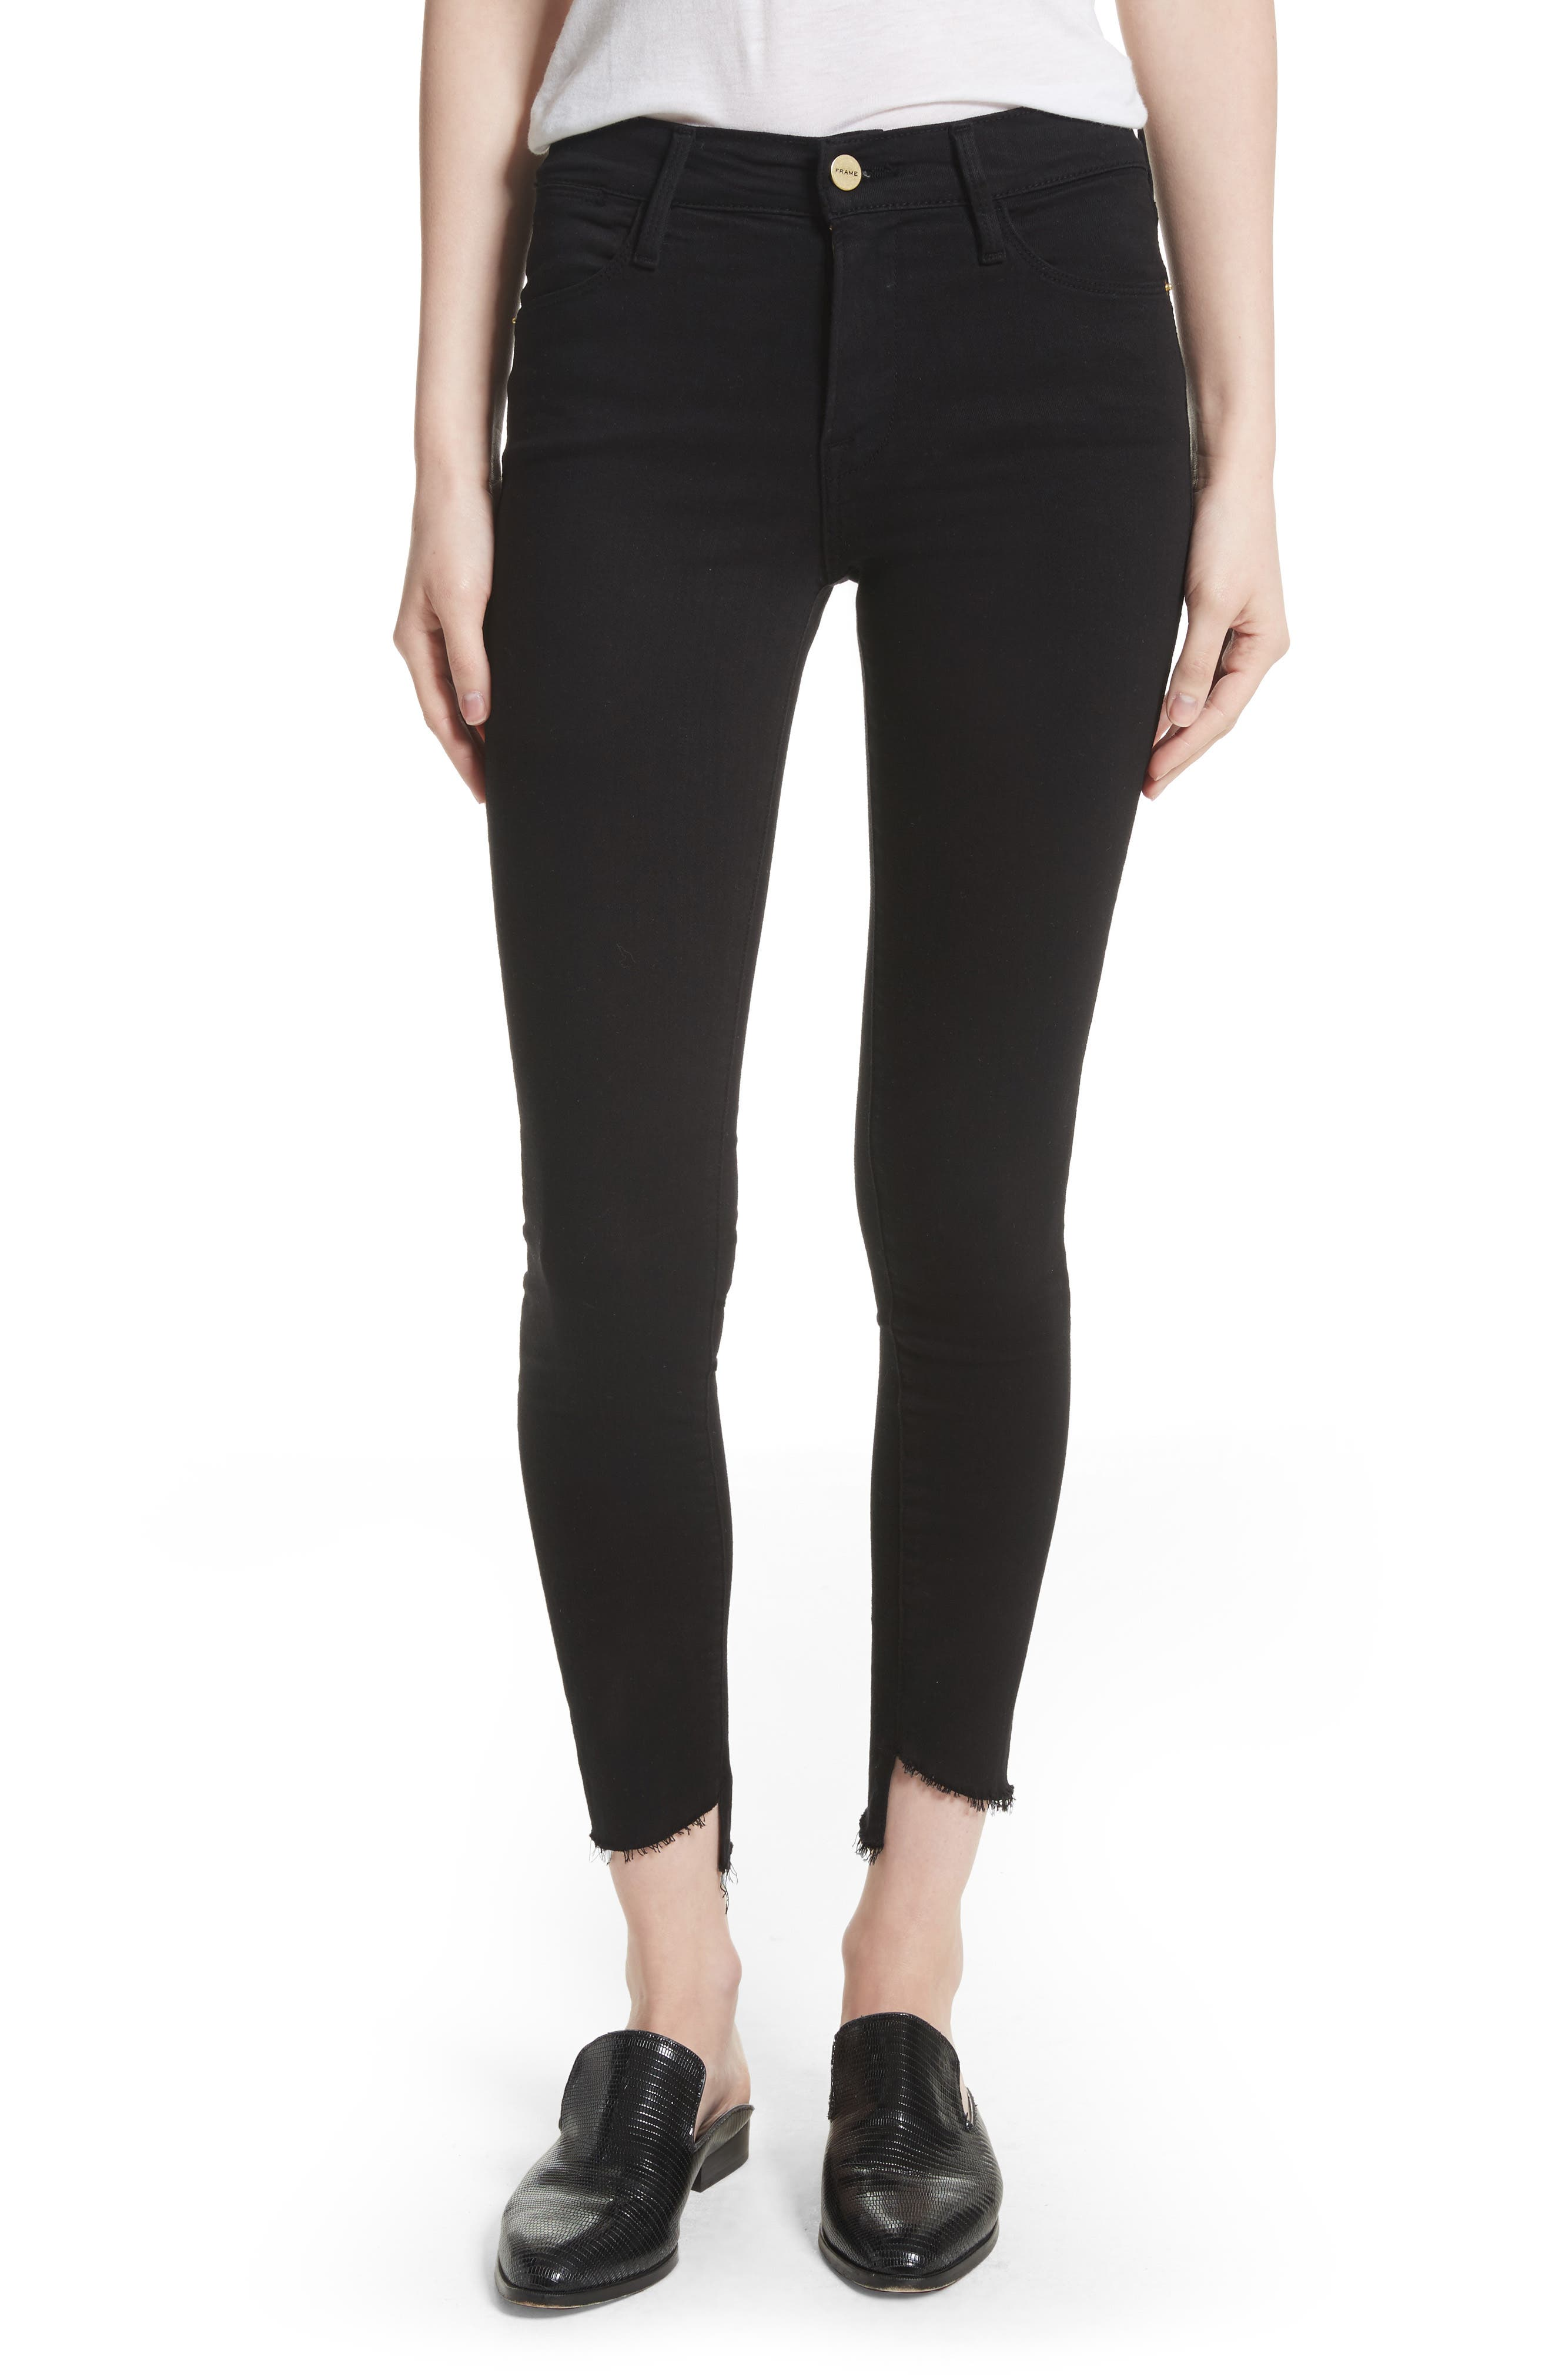 Alternate Image 1 Selected - FRAME Le High Skinny Step Hem Jeans (Film Noir) (Nordstrom Exclusive)